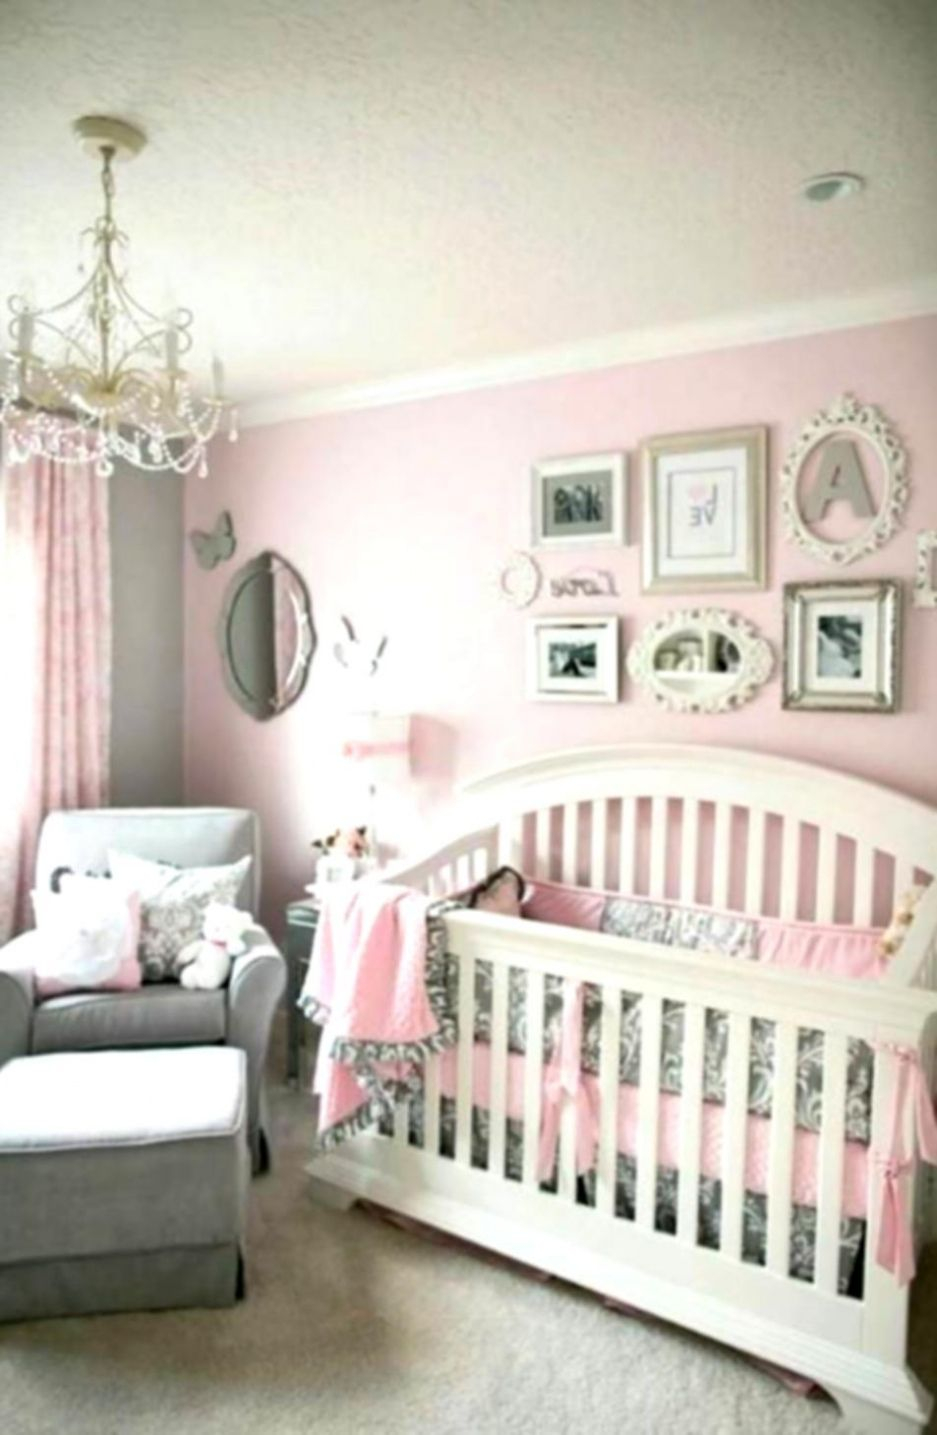 Pin Hendro Birowo On Modern Design Low Budget Girls Bedroom for Modern Baby Bedroom